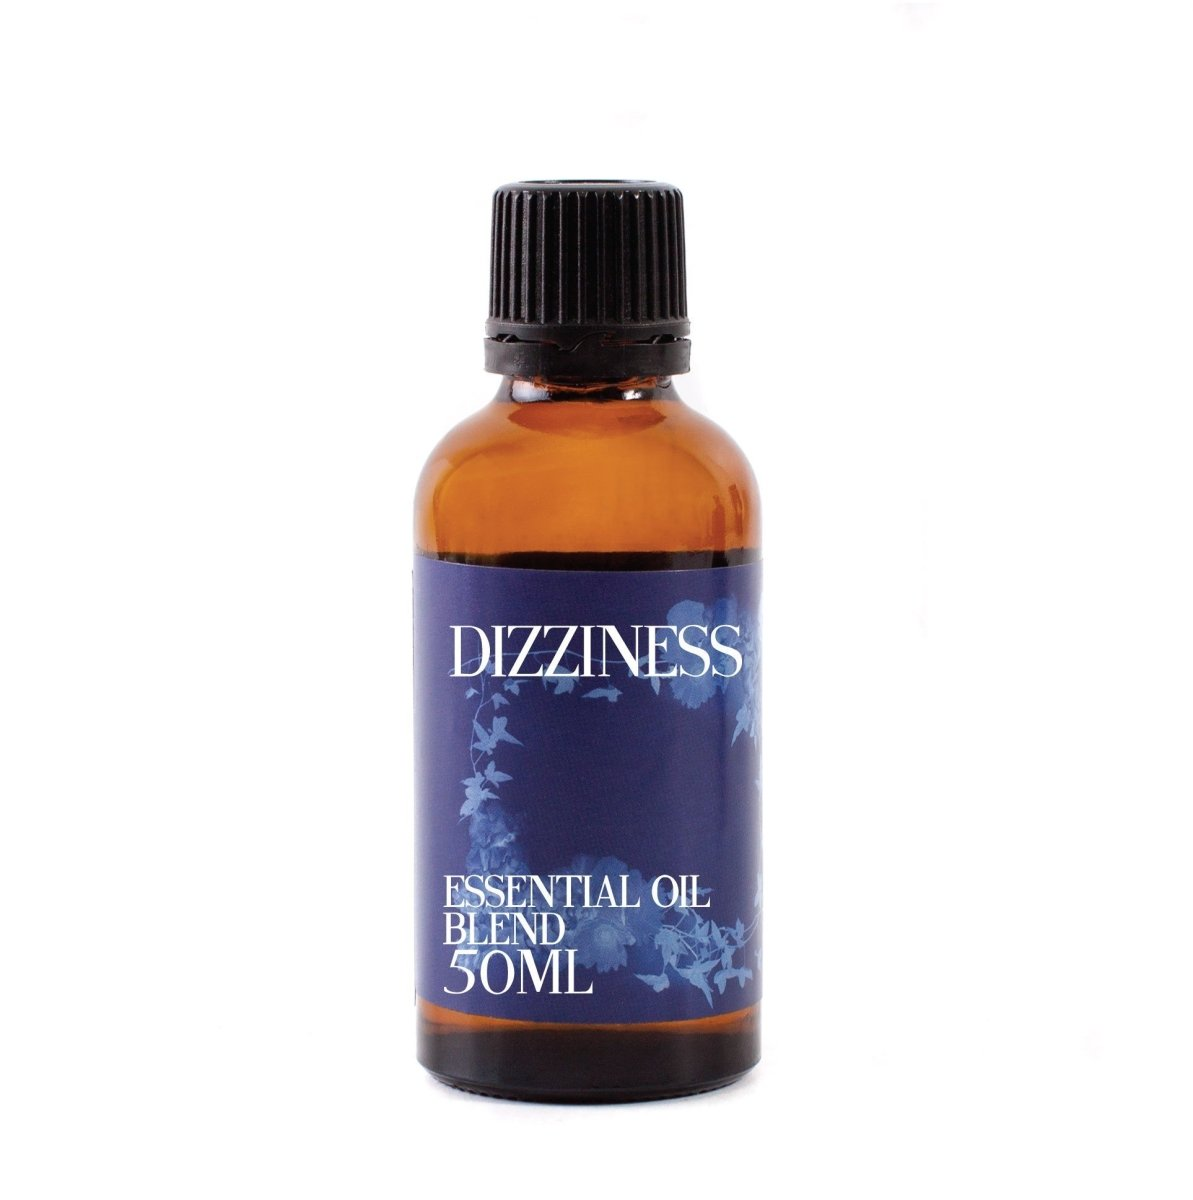 Dizziness - Essential Oil Blends - Mystic Moments UK